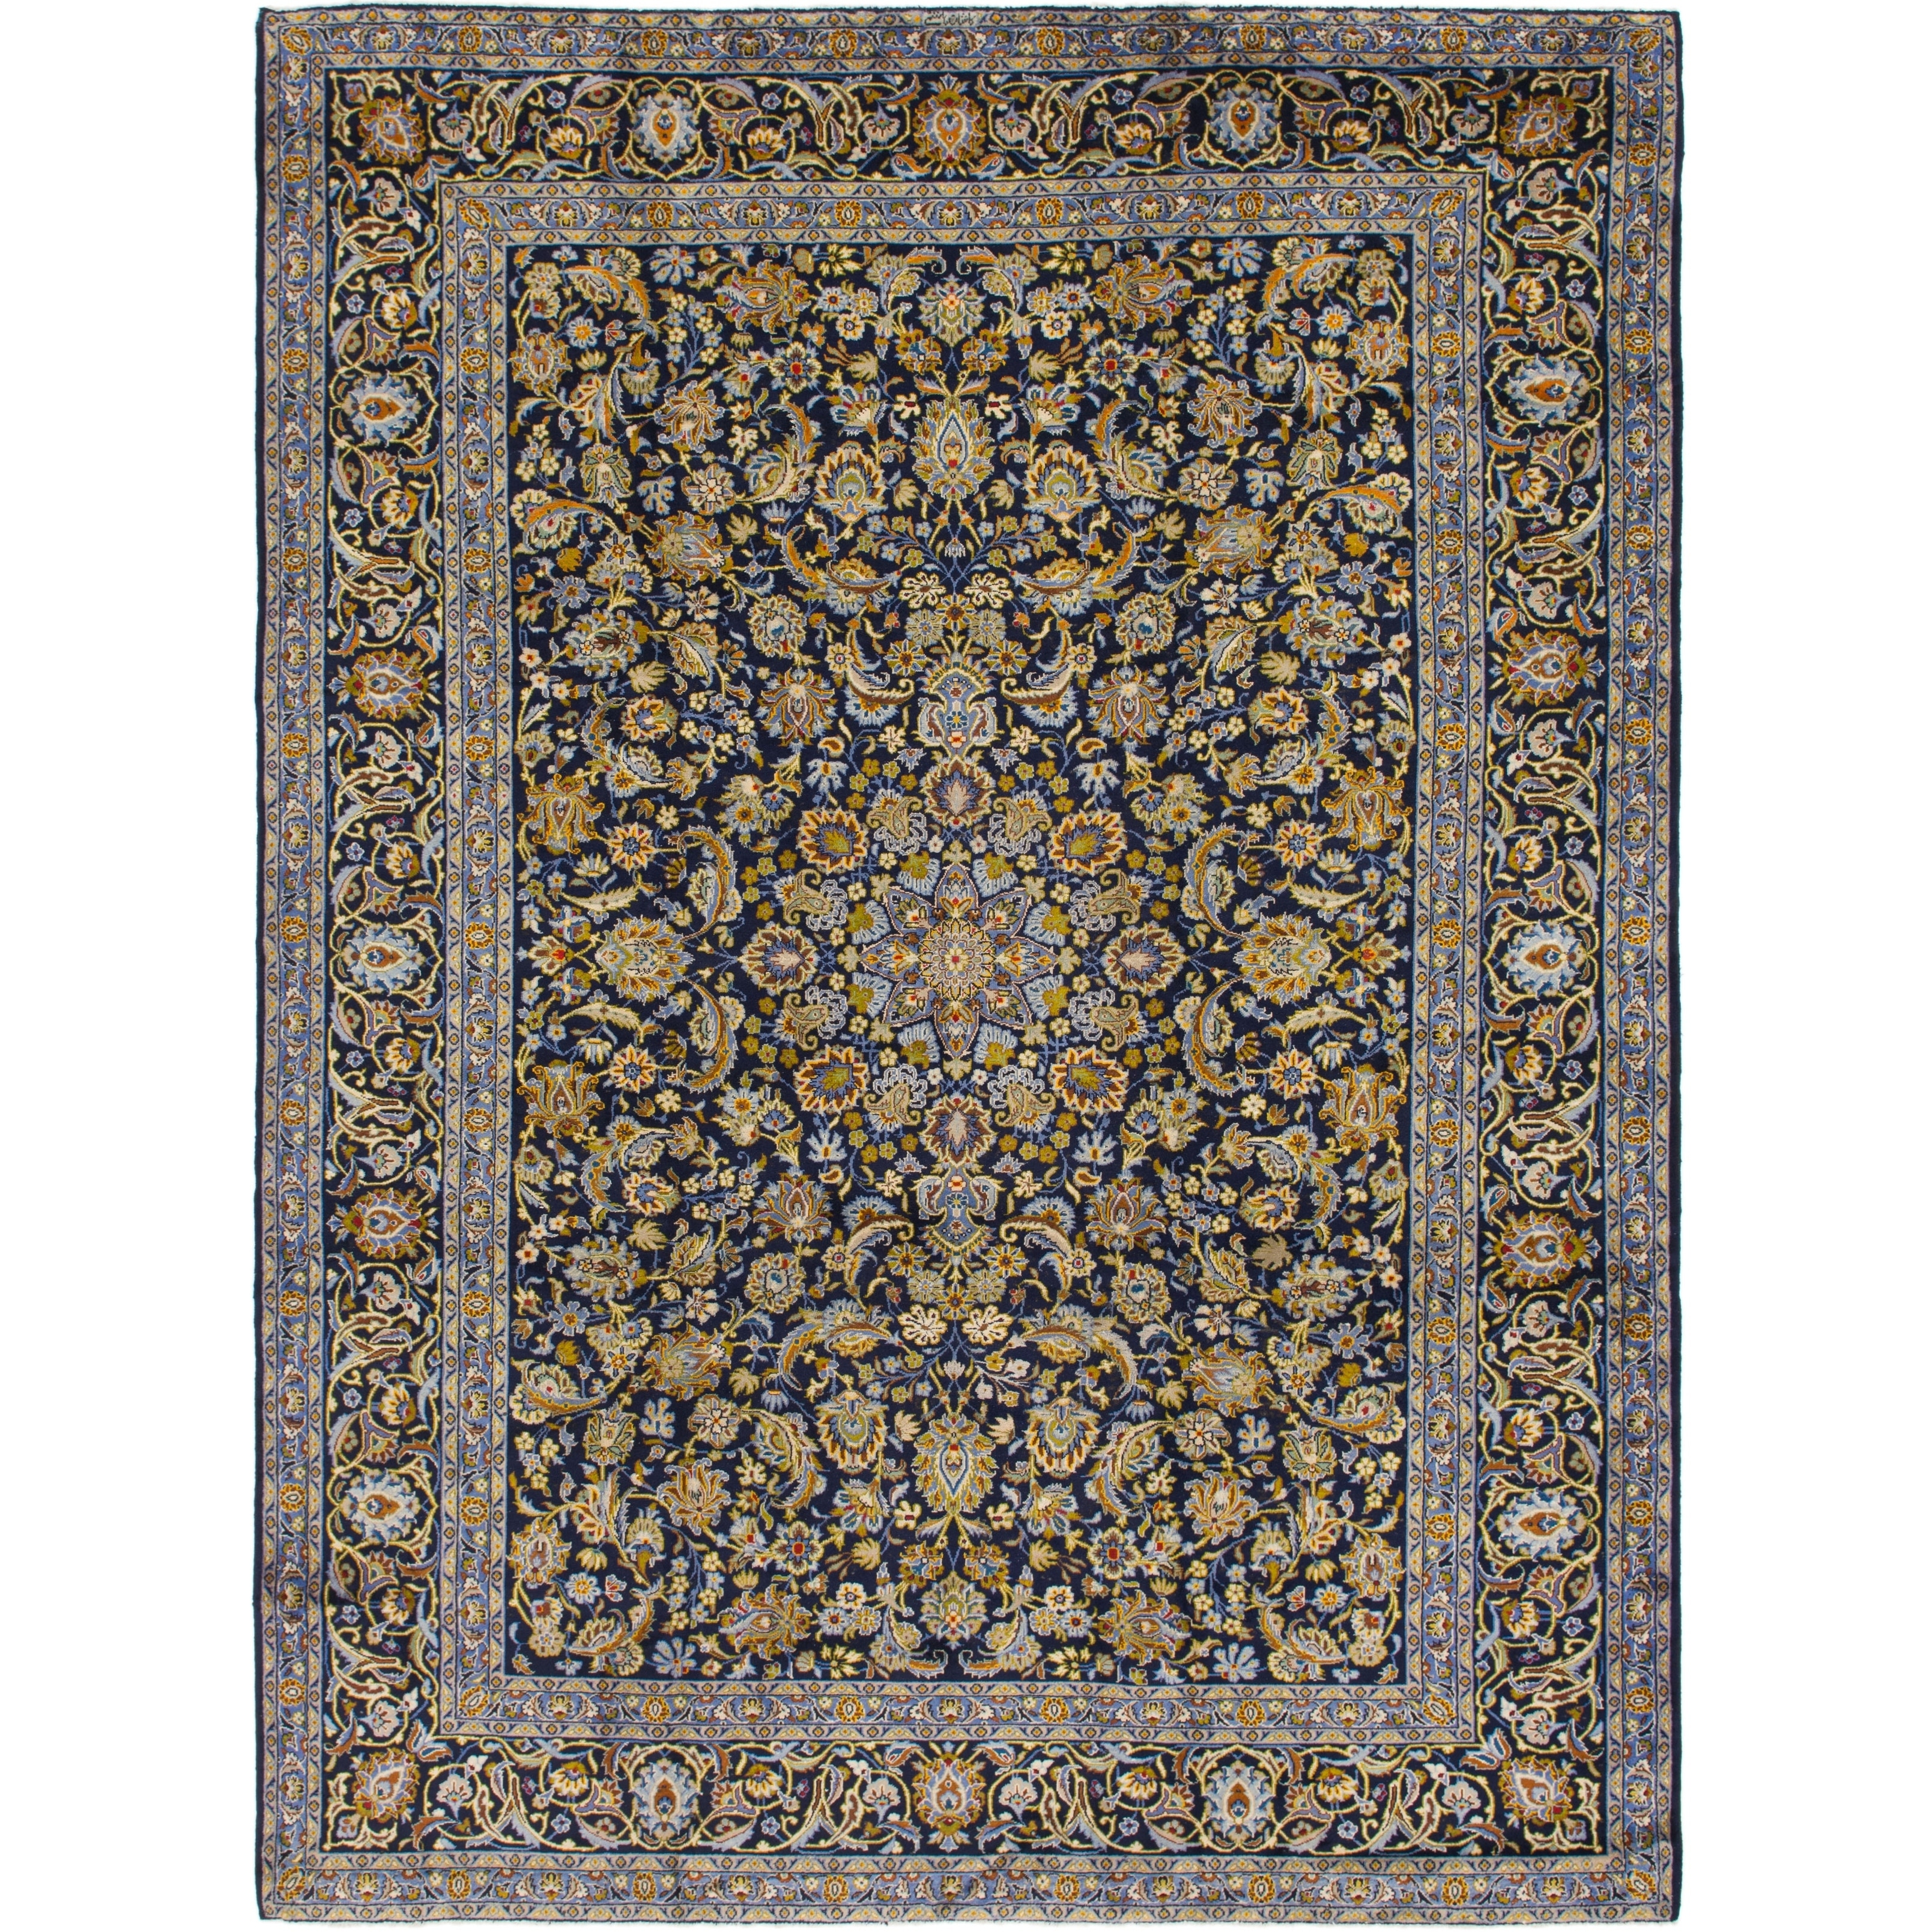 Hand Knotted Kashan Semi Antique Wool Area Rug - 9 9 x 13 (Navy blue - 9 9 x 13)